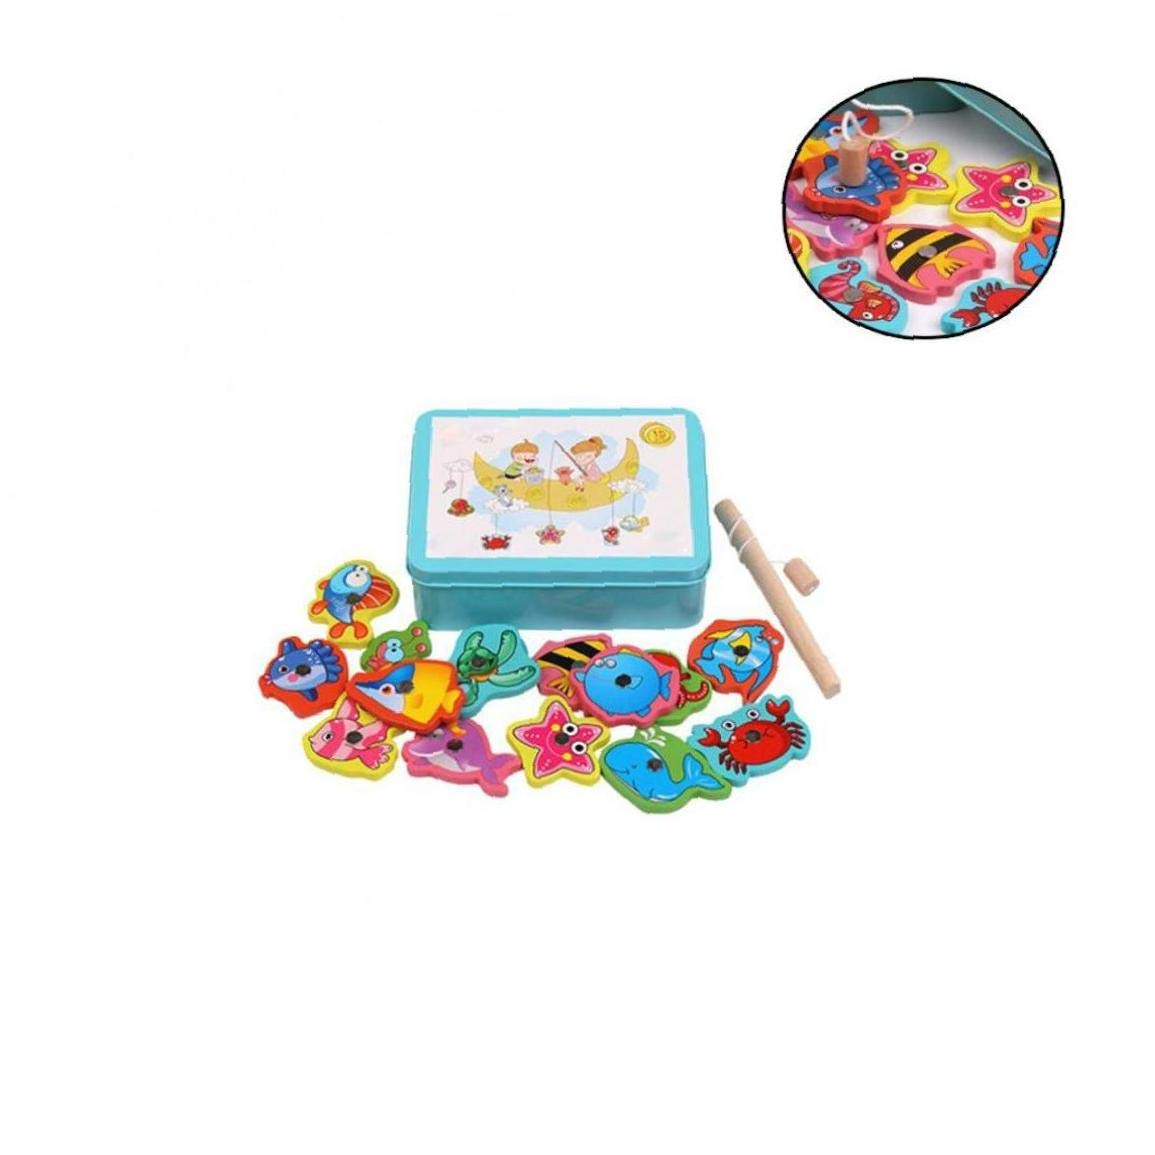 Fishing Game Toys Set Magnetic Fishing Game Toddle Toys 15 Fishes With 1 Fishing Rod Wooden Box Toy For Kids Blue Iron Box